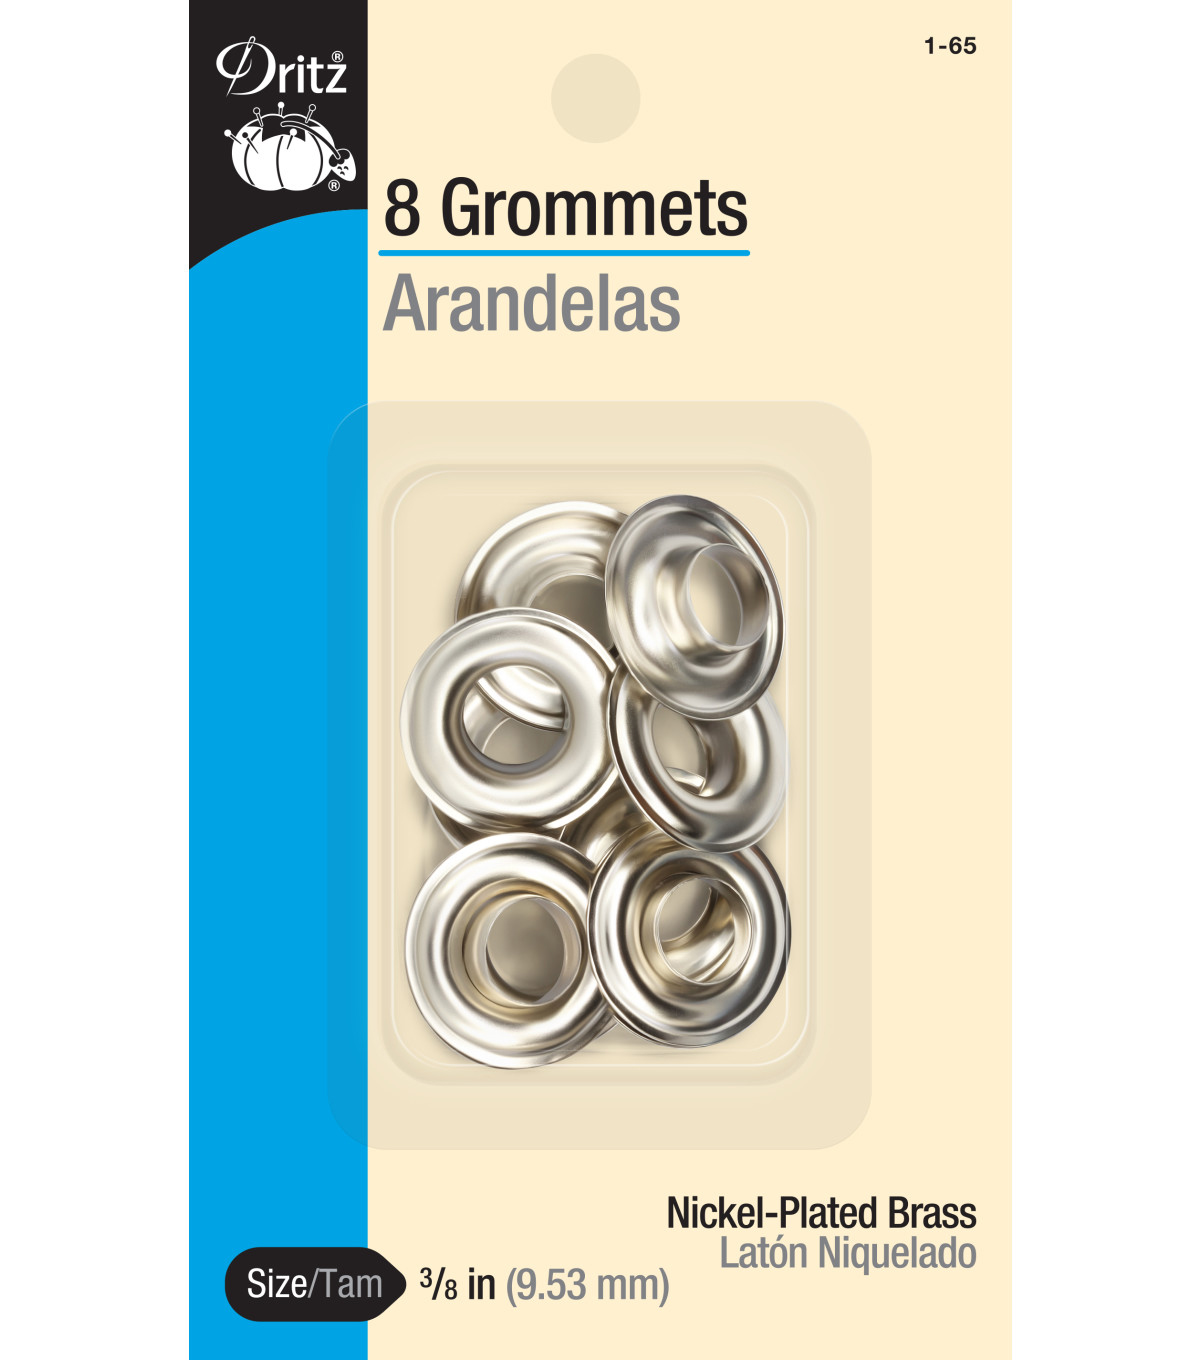 Dritz 0.38\u0027\u0027 Grommets Brass 8pcs, Nickel